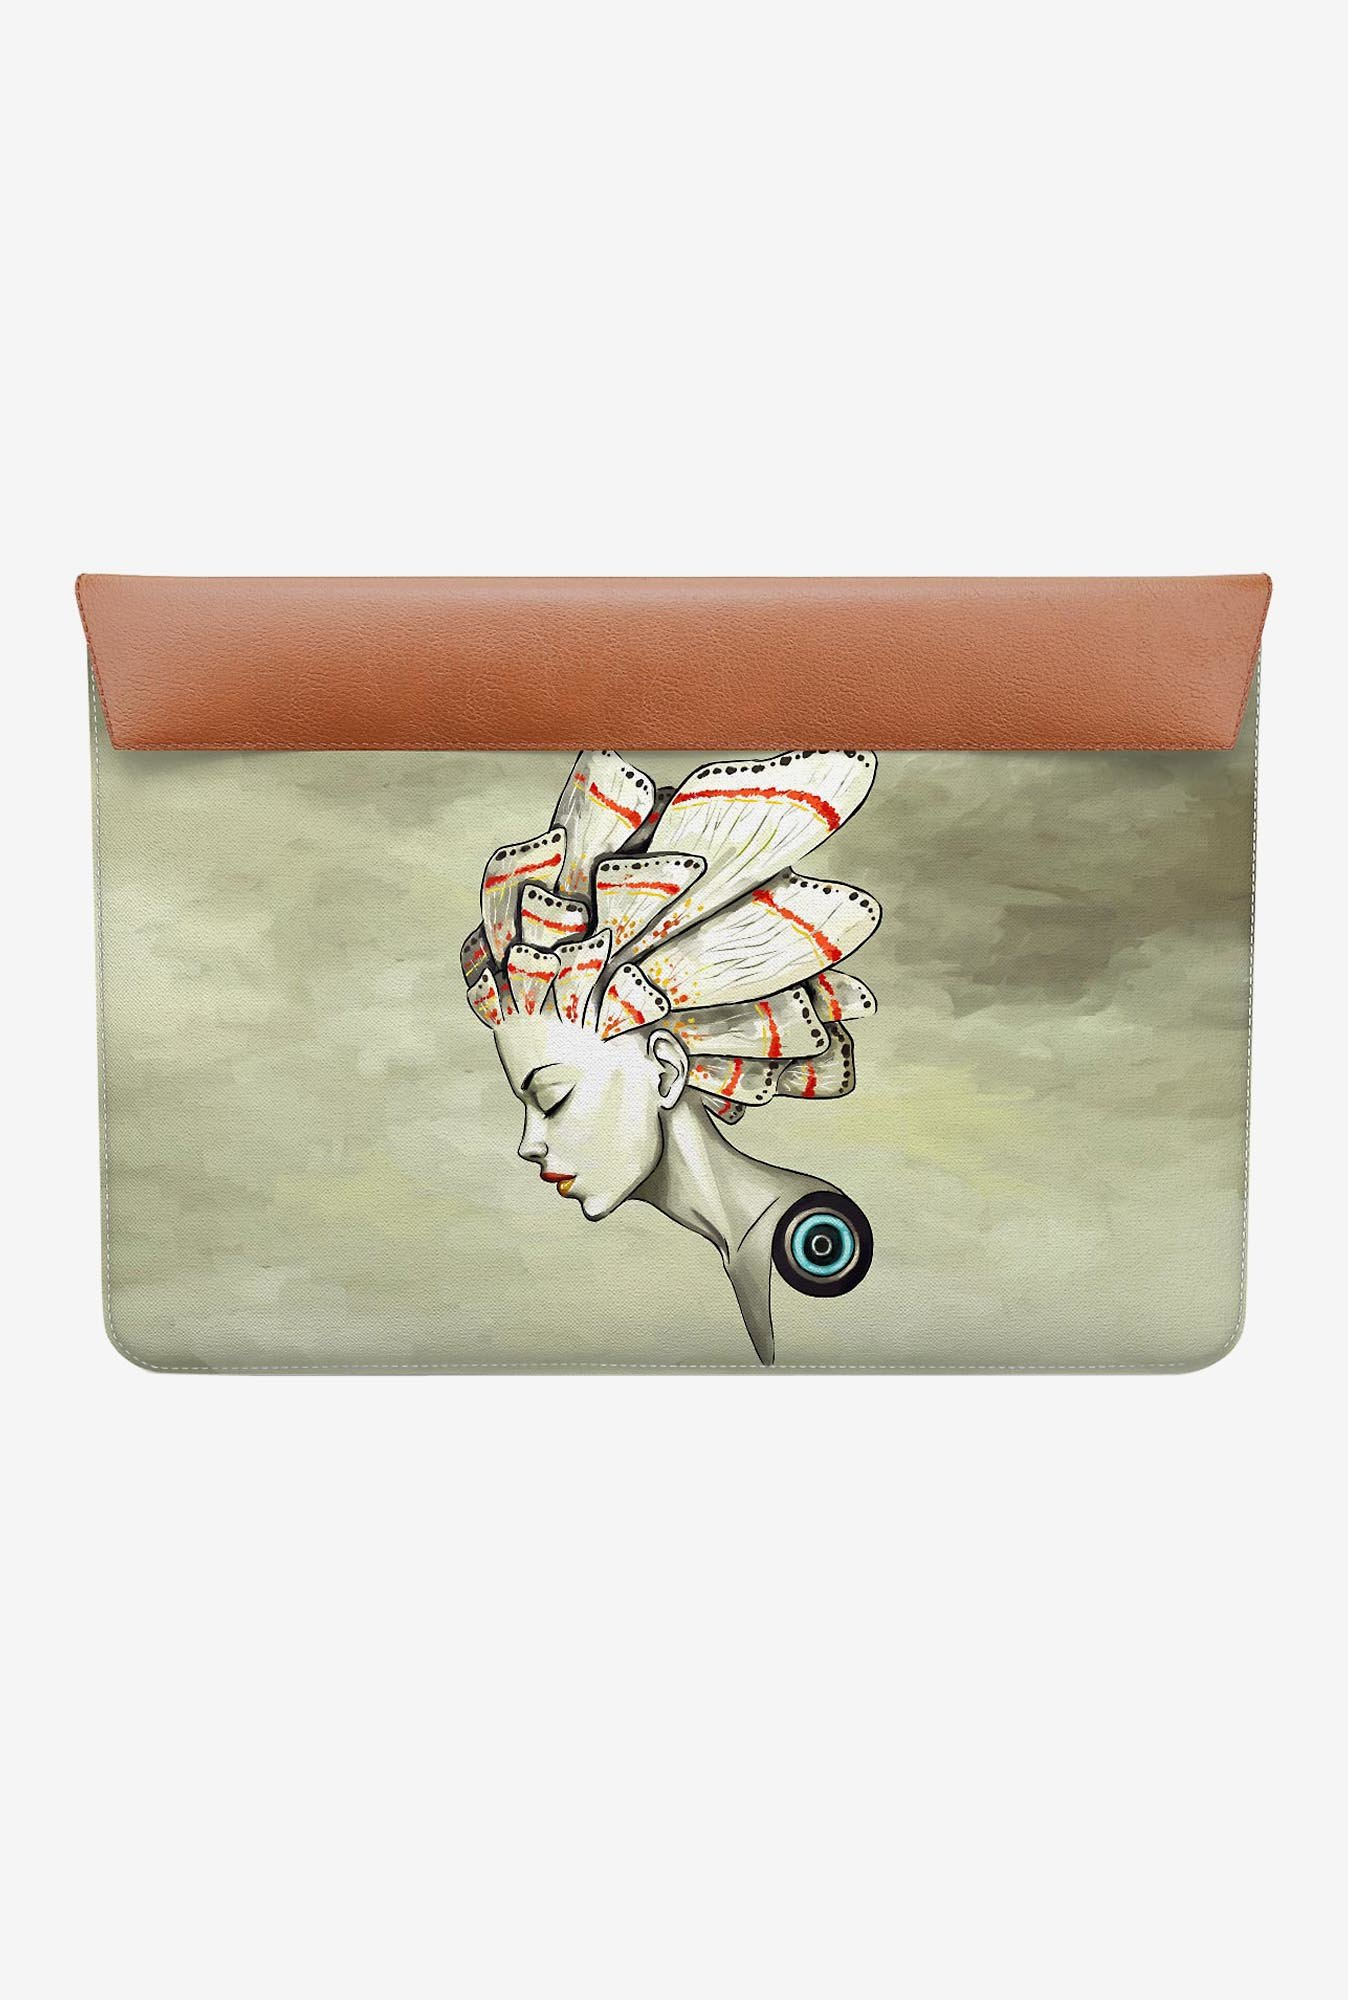 DailyObjects Moth Birth MacBook Air 11 Envelope Sleeve